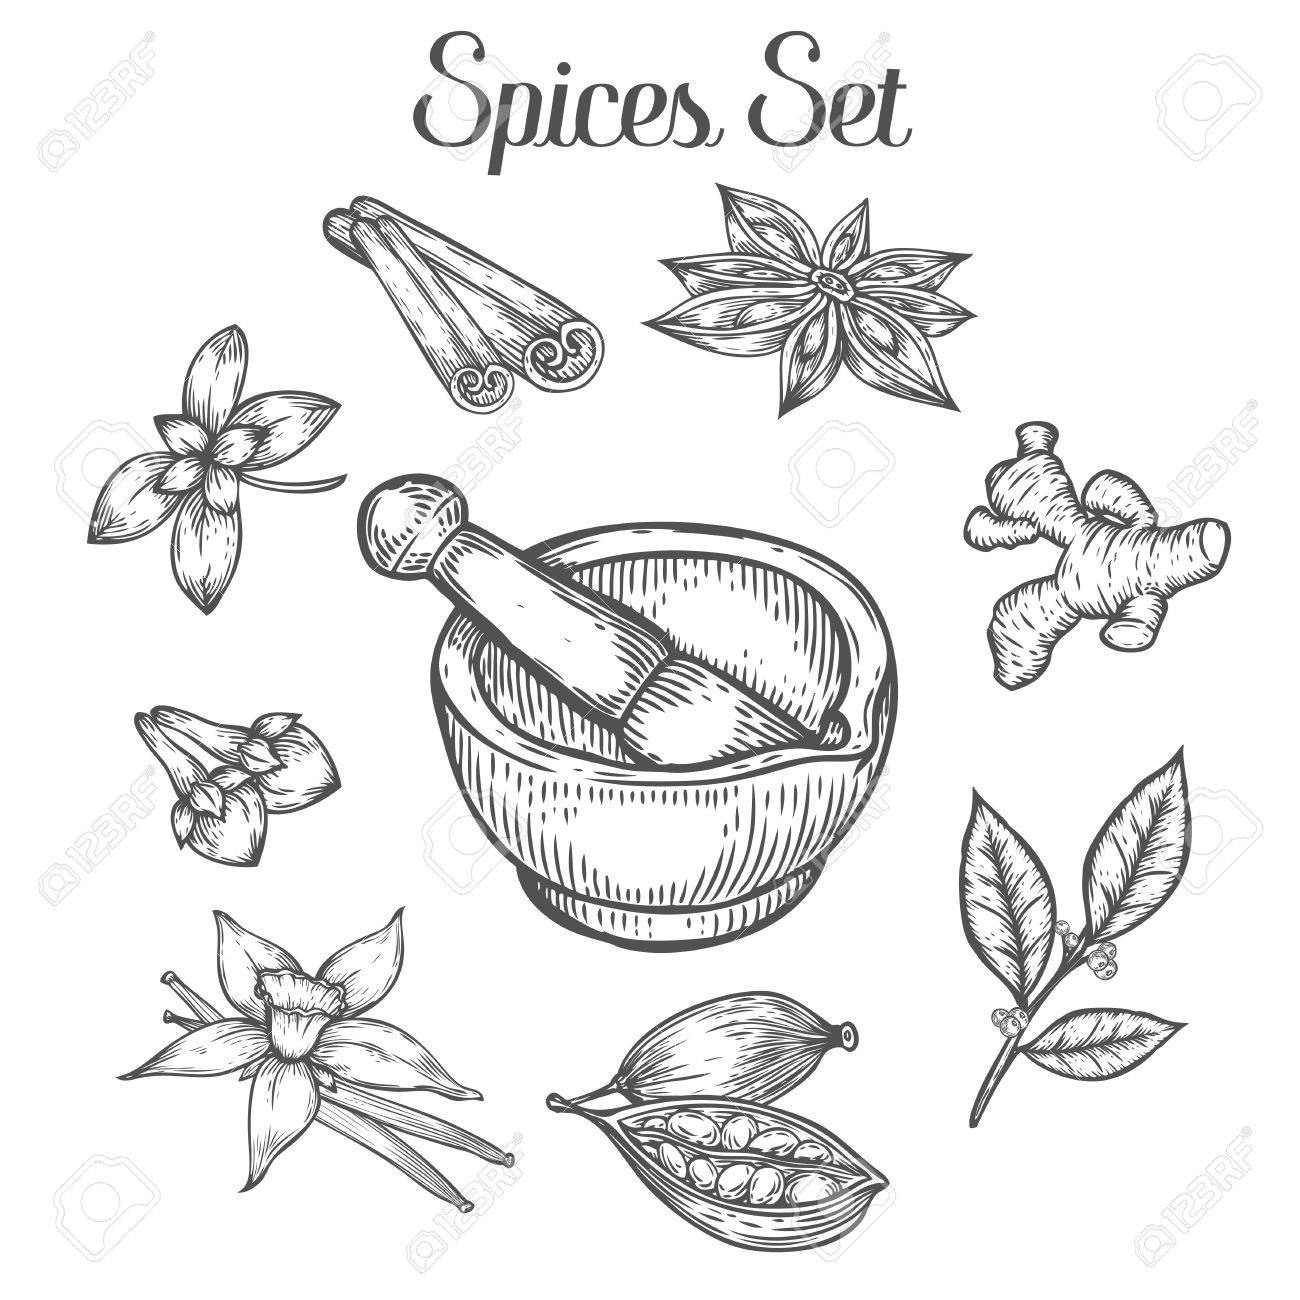 1300x1300 Mortar And Pestle With Spices. Hand Drawn Sketch Vector Retro